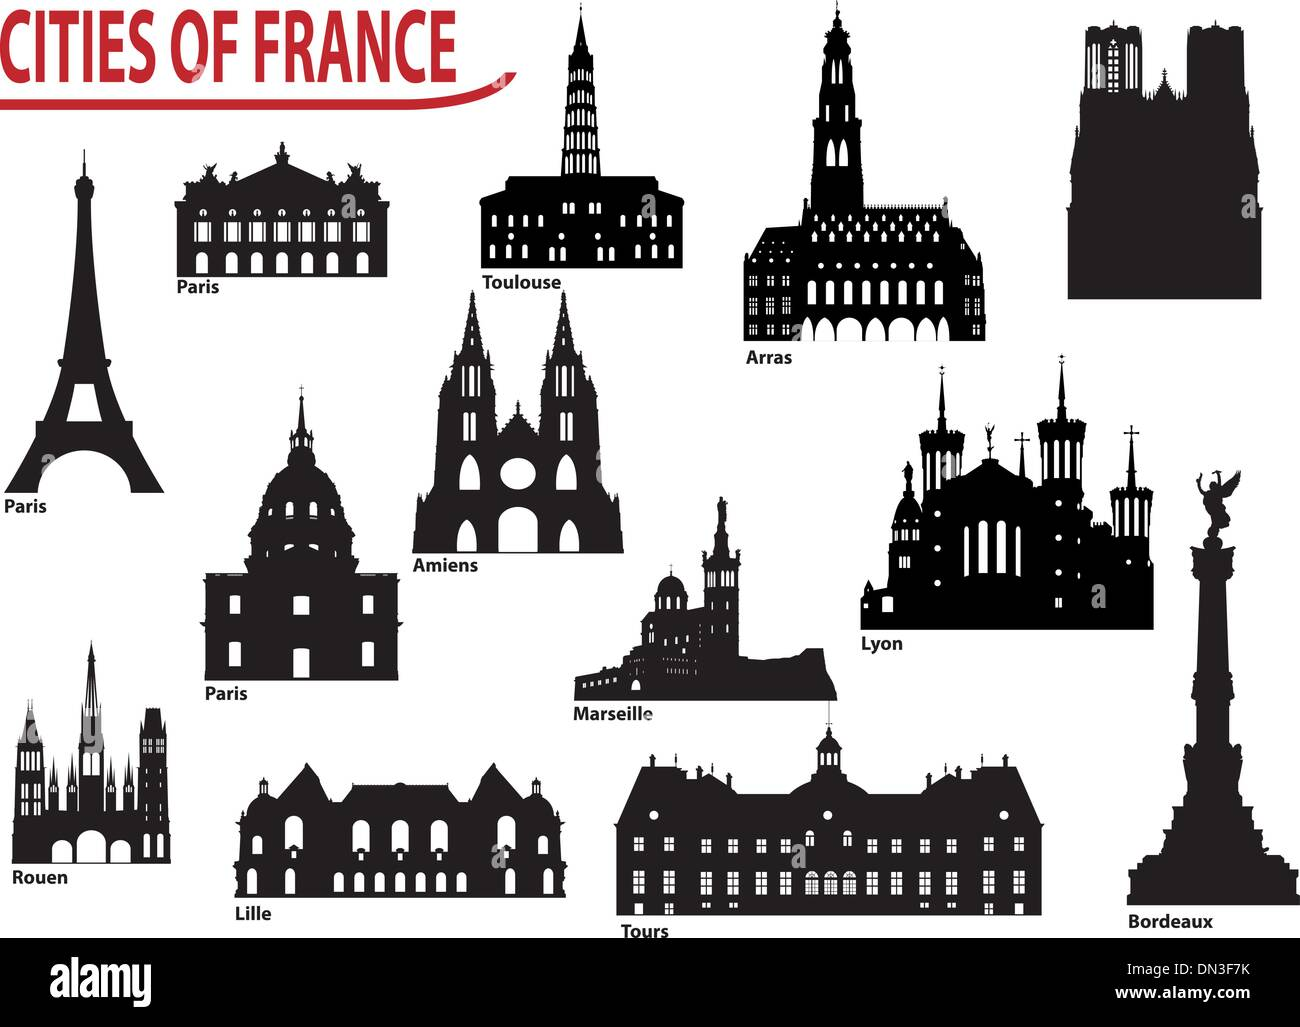 Silhouettes of cities in France - Stock Vector